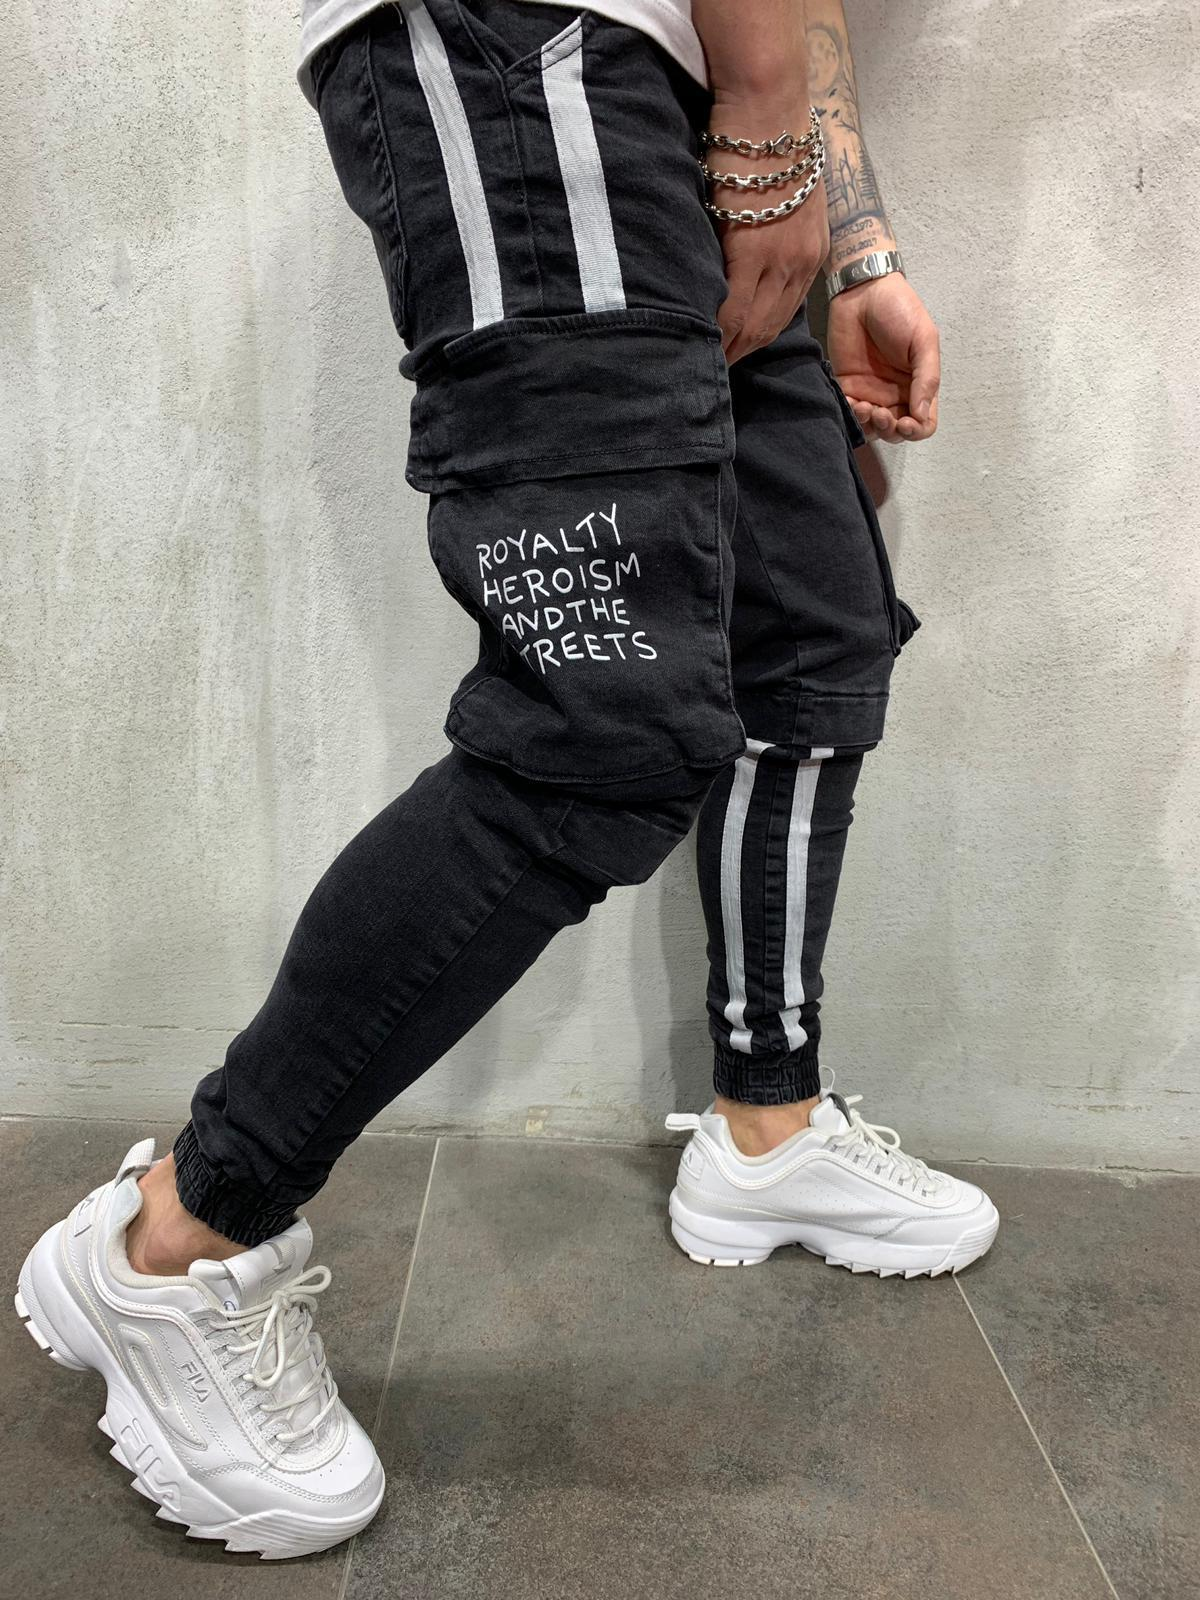 Cargo Jeans White Side Stripes Gentlemantobe Mens Pants Fashion Striped Jeans Mens Outfits